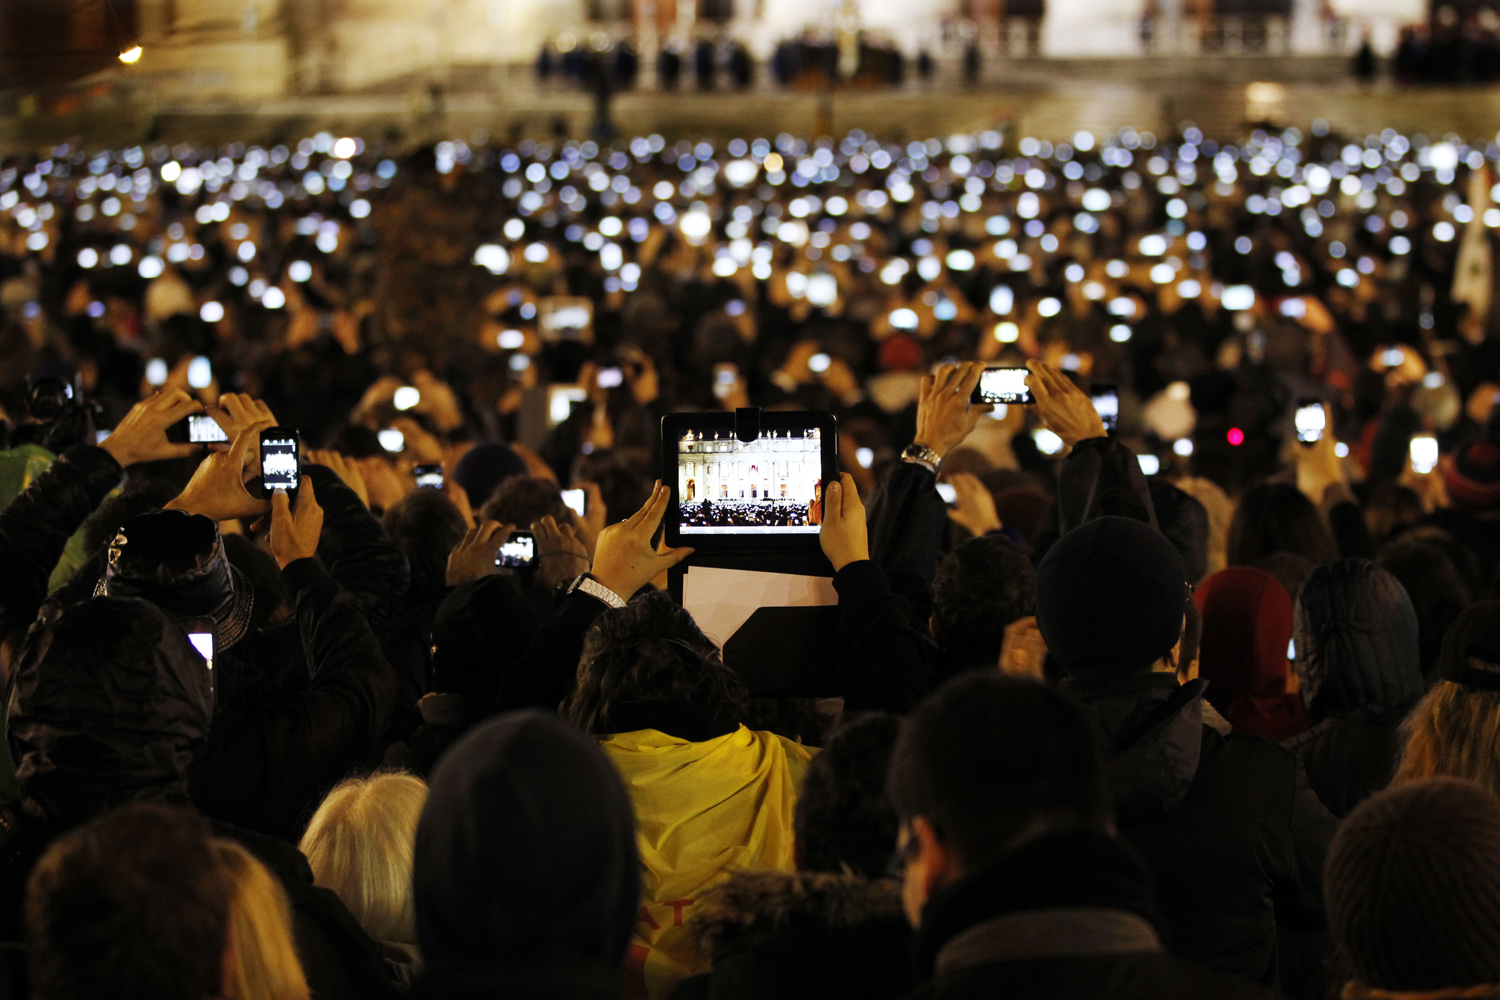 Visitors take photos of Pope Francis as he speaks from the central balcony of St. Peter's Basilica at the Vatican.